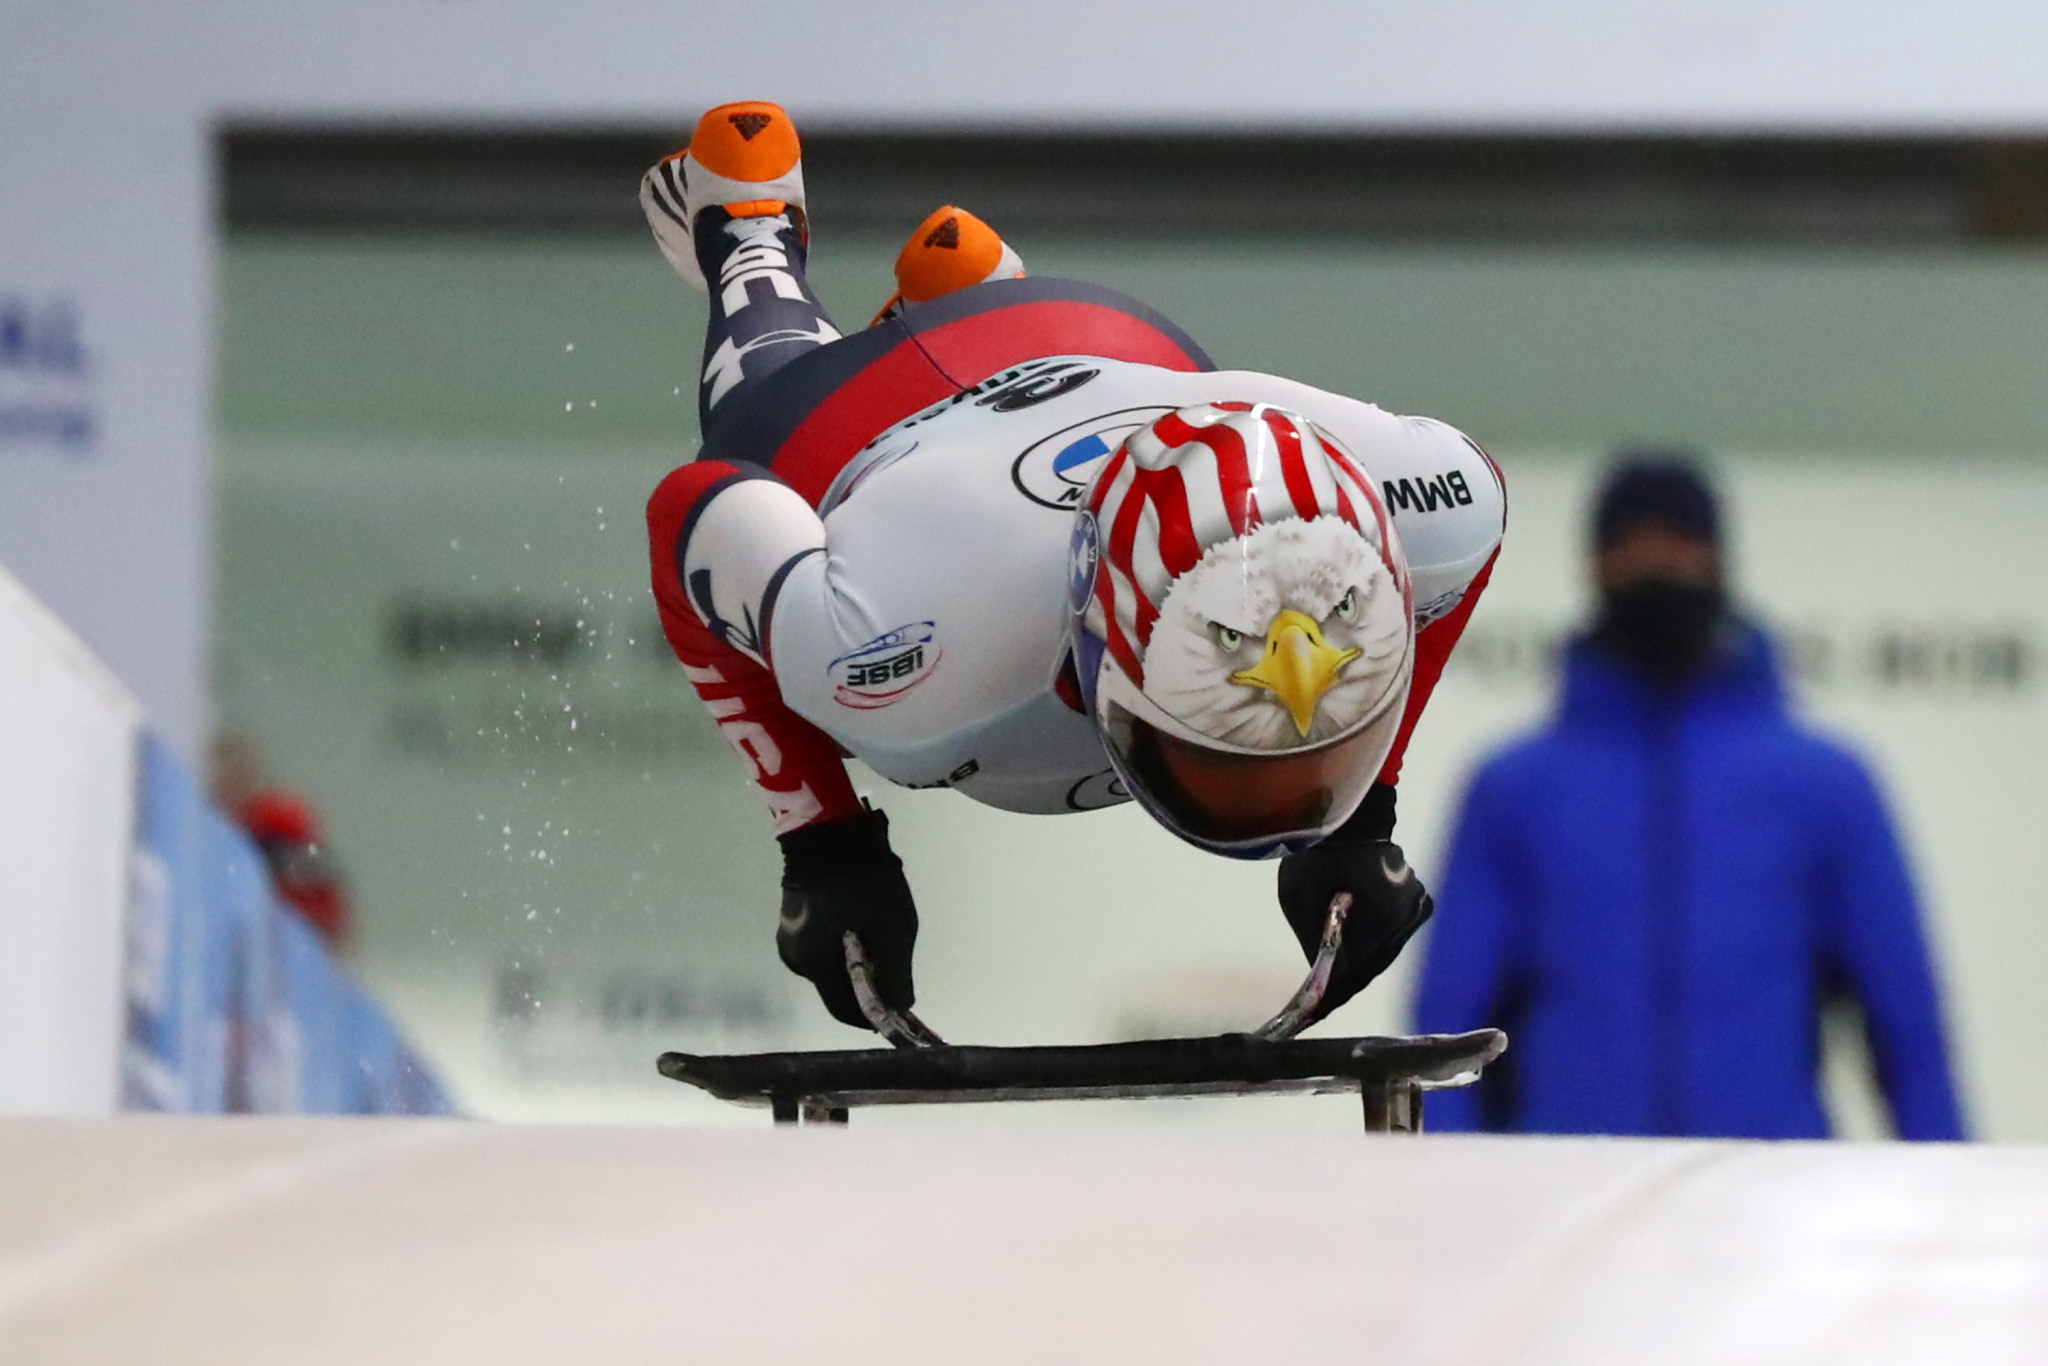 USA Bobsled and Skeleton has announced a number of partnerships in recent months ©Getty Images